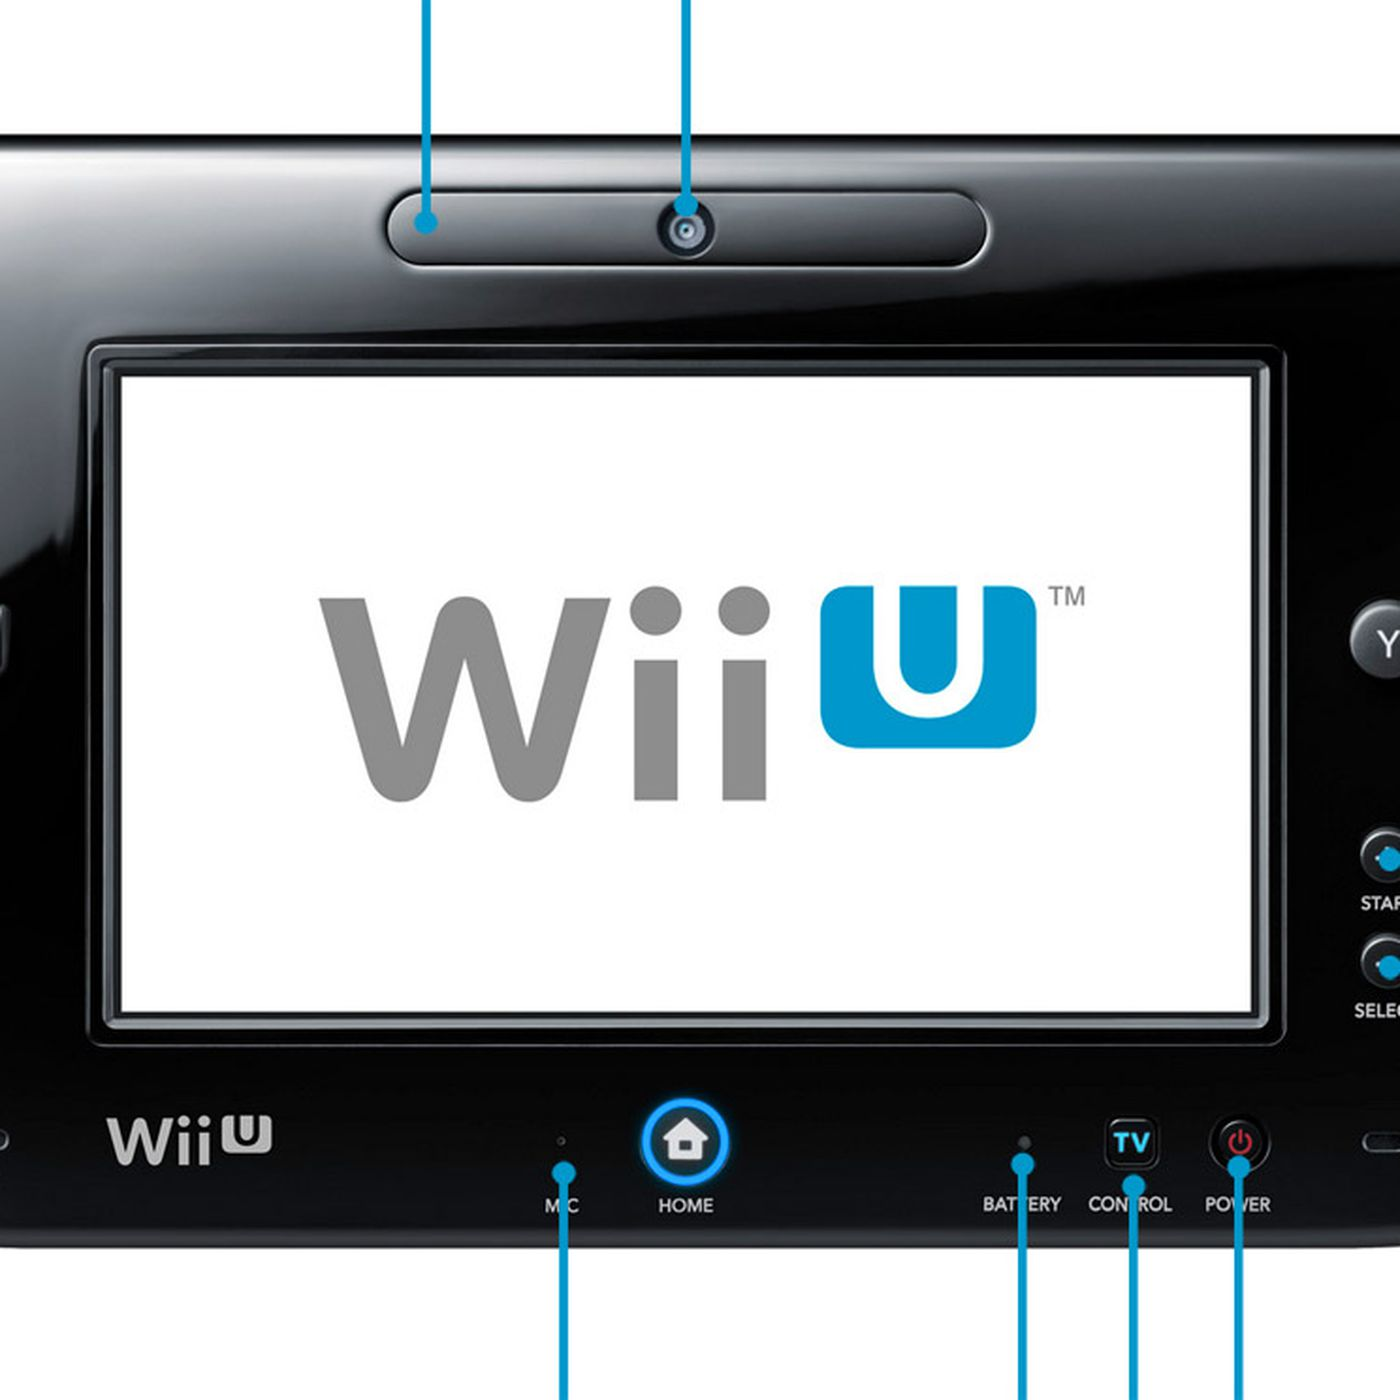 wii u instruction manual offers detailed diagrams of gamepad, pro  controller and more - polygon